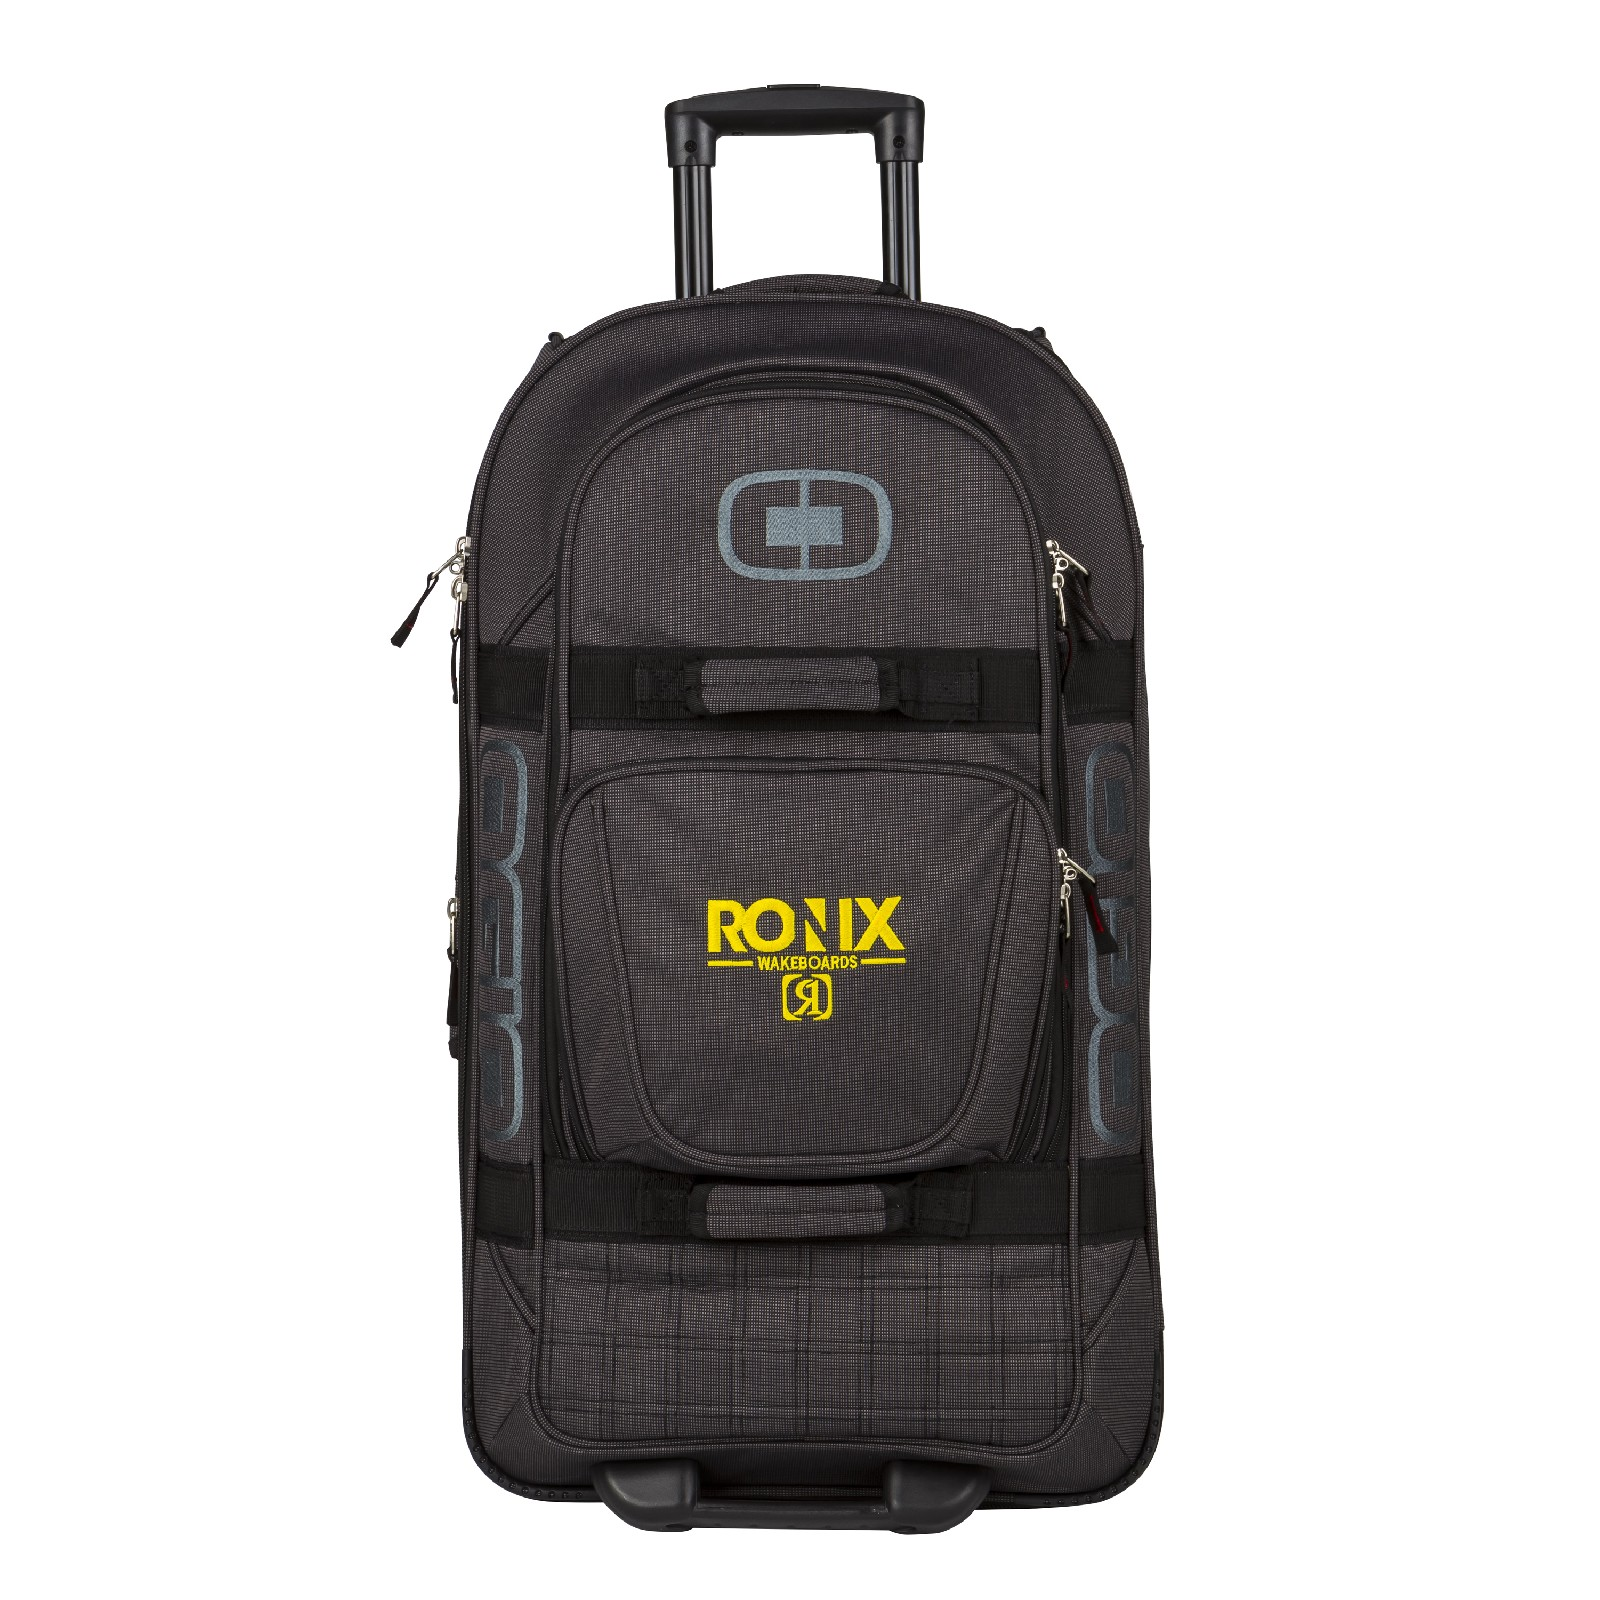 OGIO TERMINAL TRAVEL LUGGAGE RONIX 2019